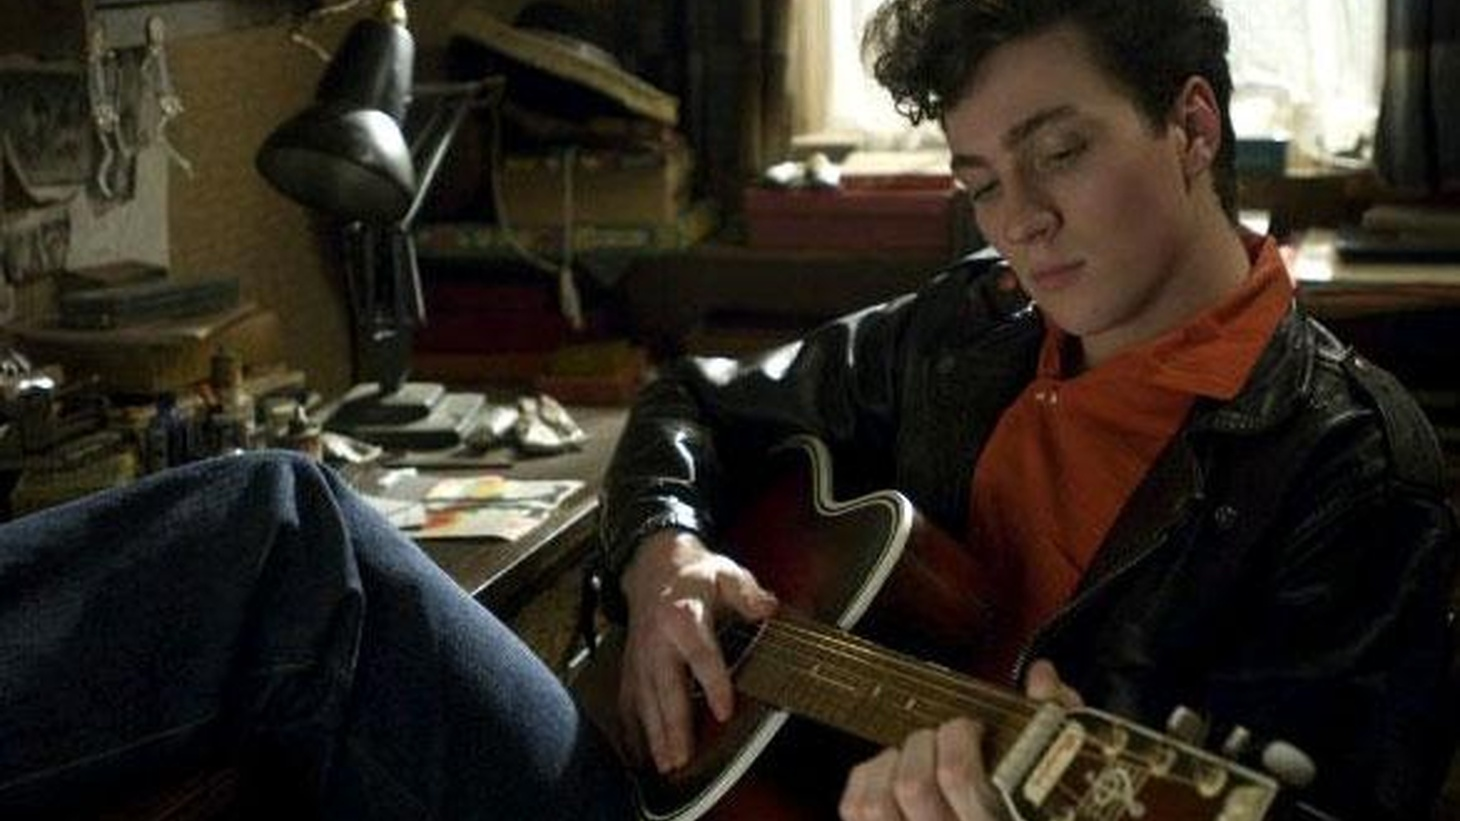 Nowhere Boy is a dramatized account of the young John Lennon -- who would have turned 70 tomorrow. It's a modest film, and an enjoyable one... 